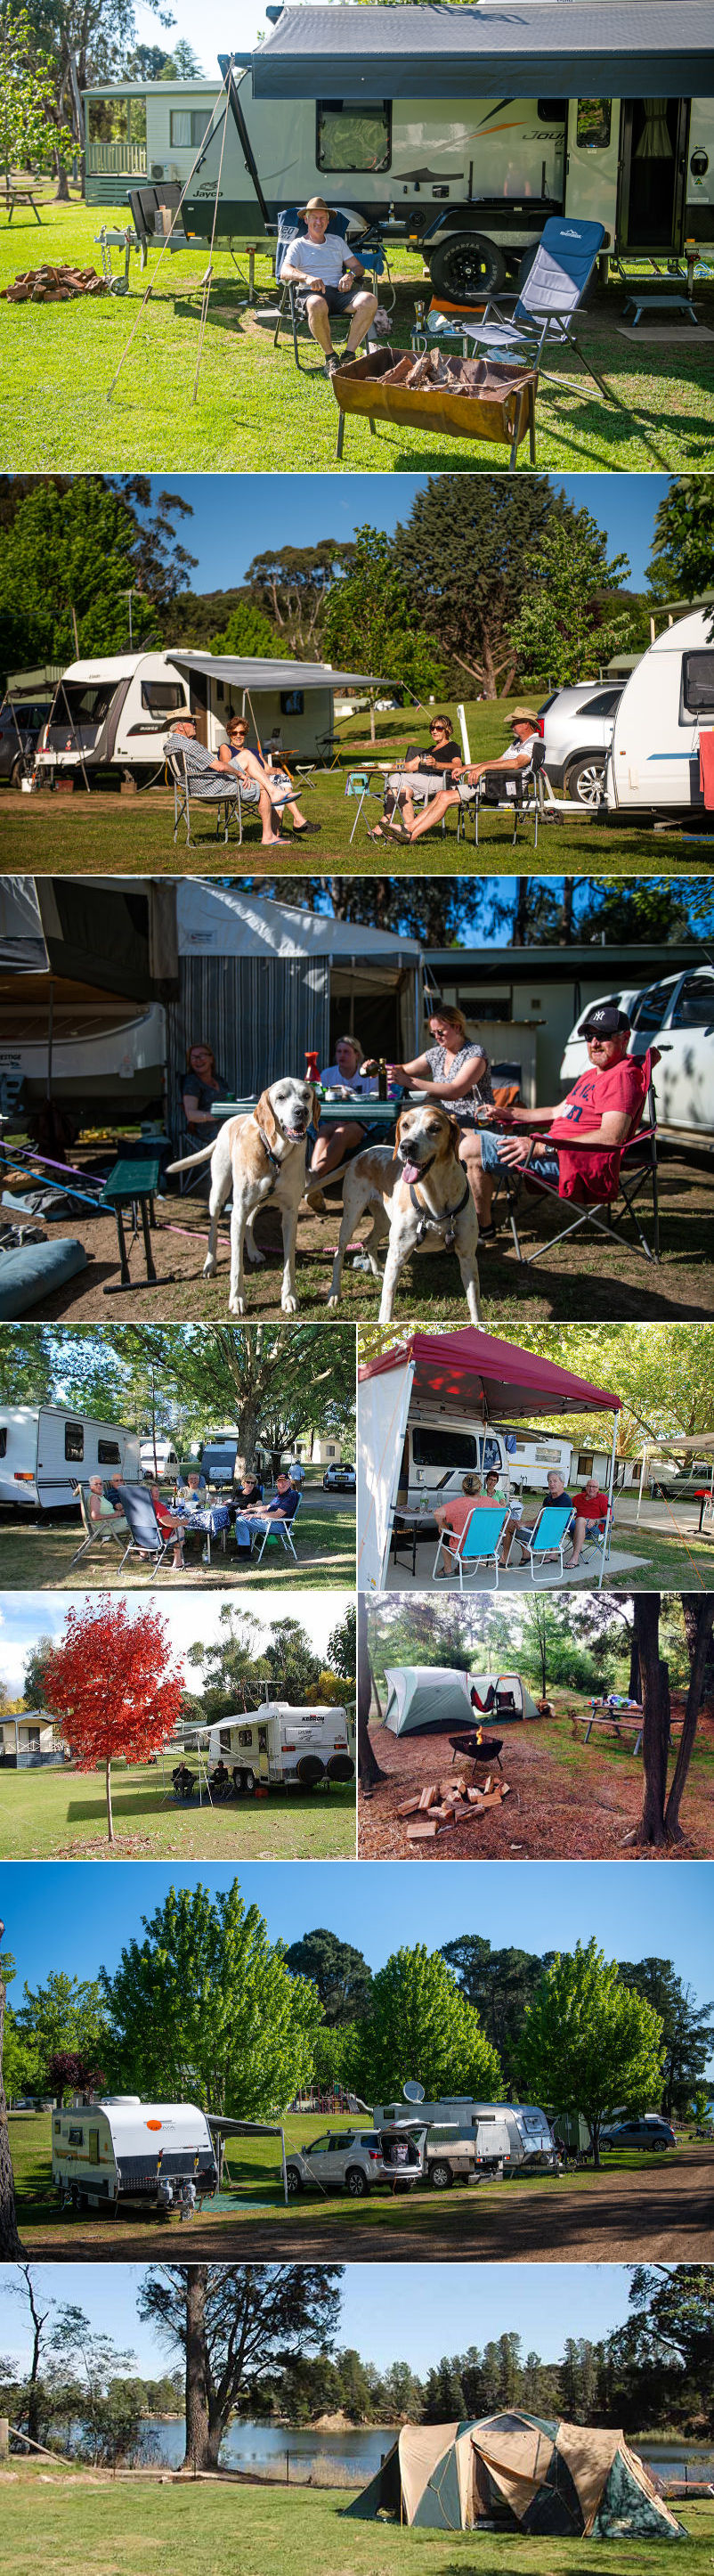 Beechworth Lake Sambell Caravan Park - sites